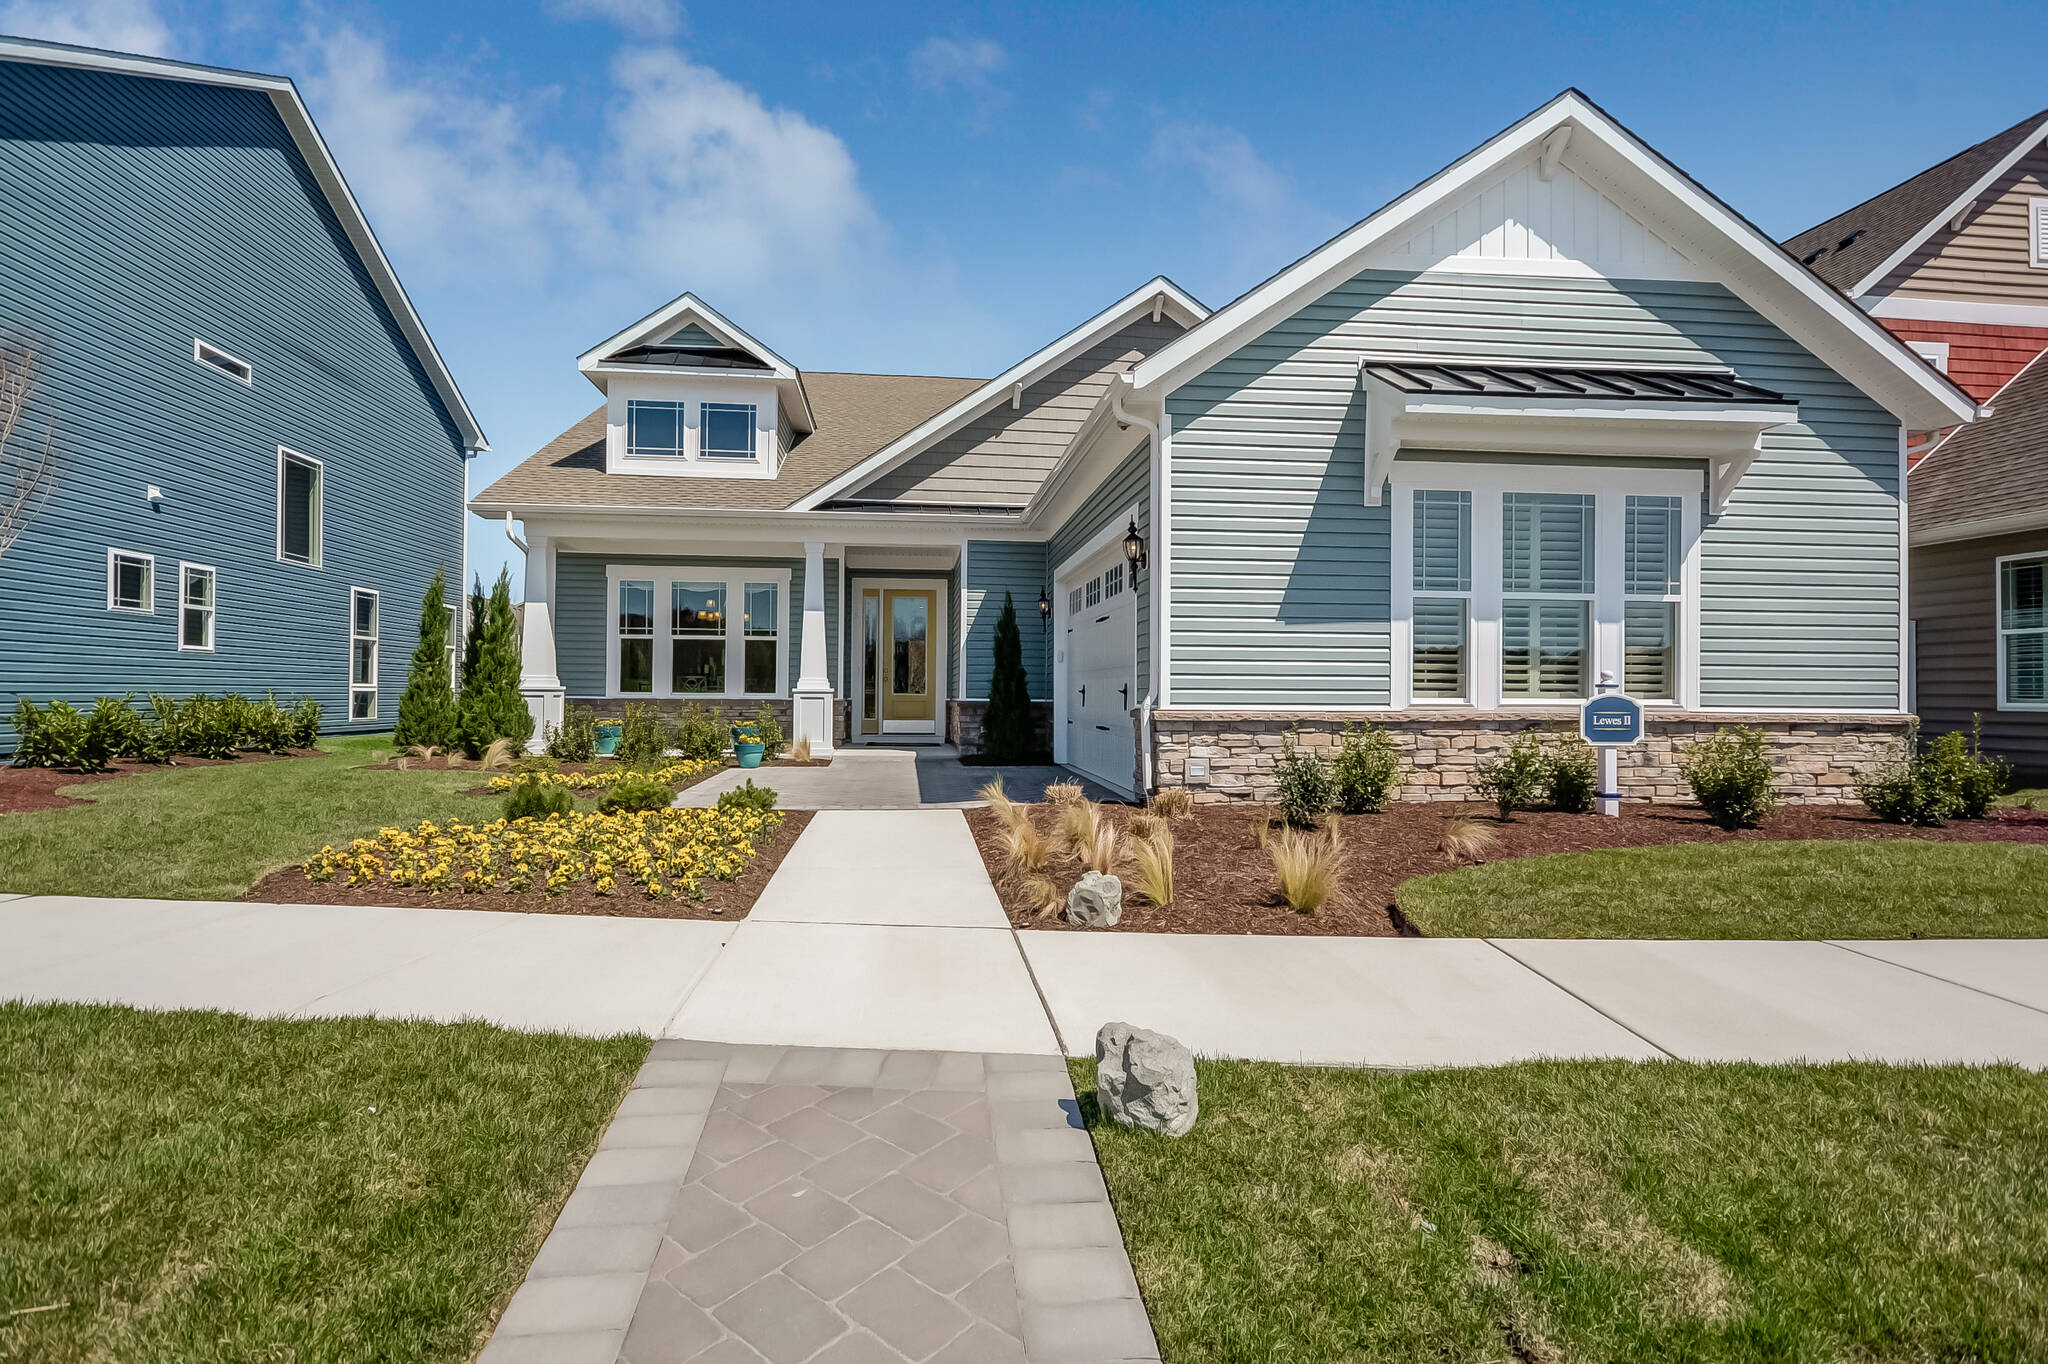 lewes II bs new homes at ocean view beach club in delaware